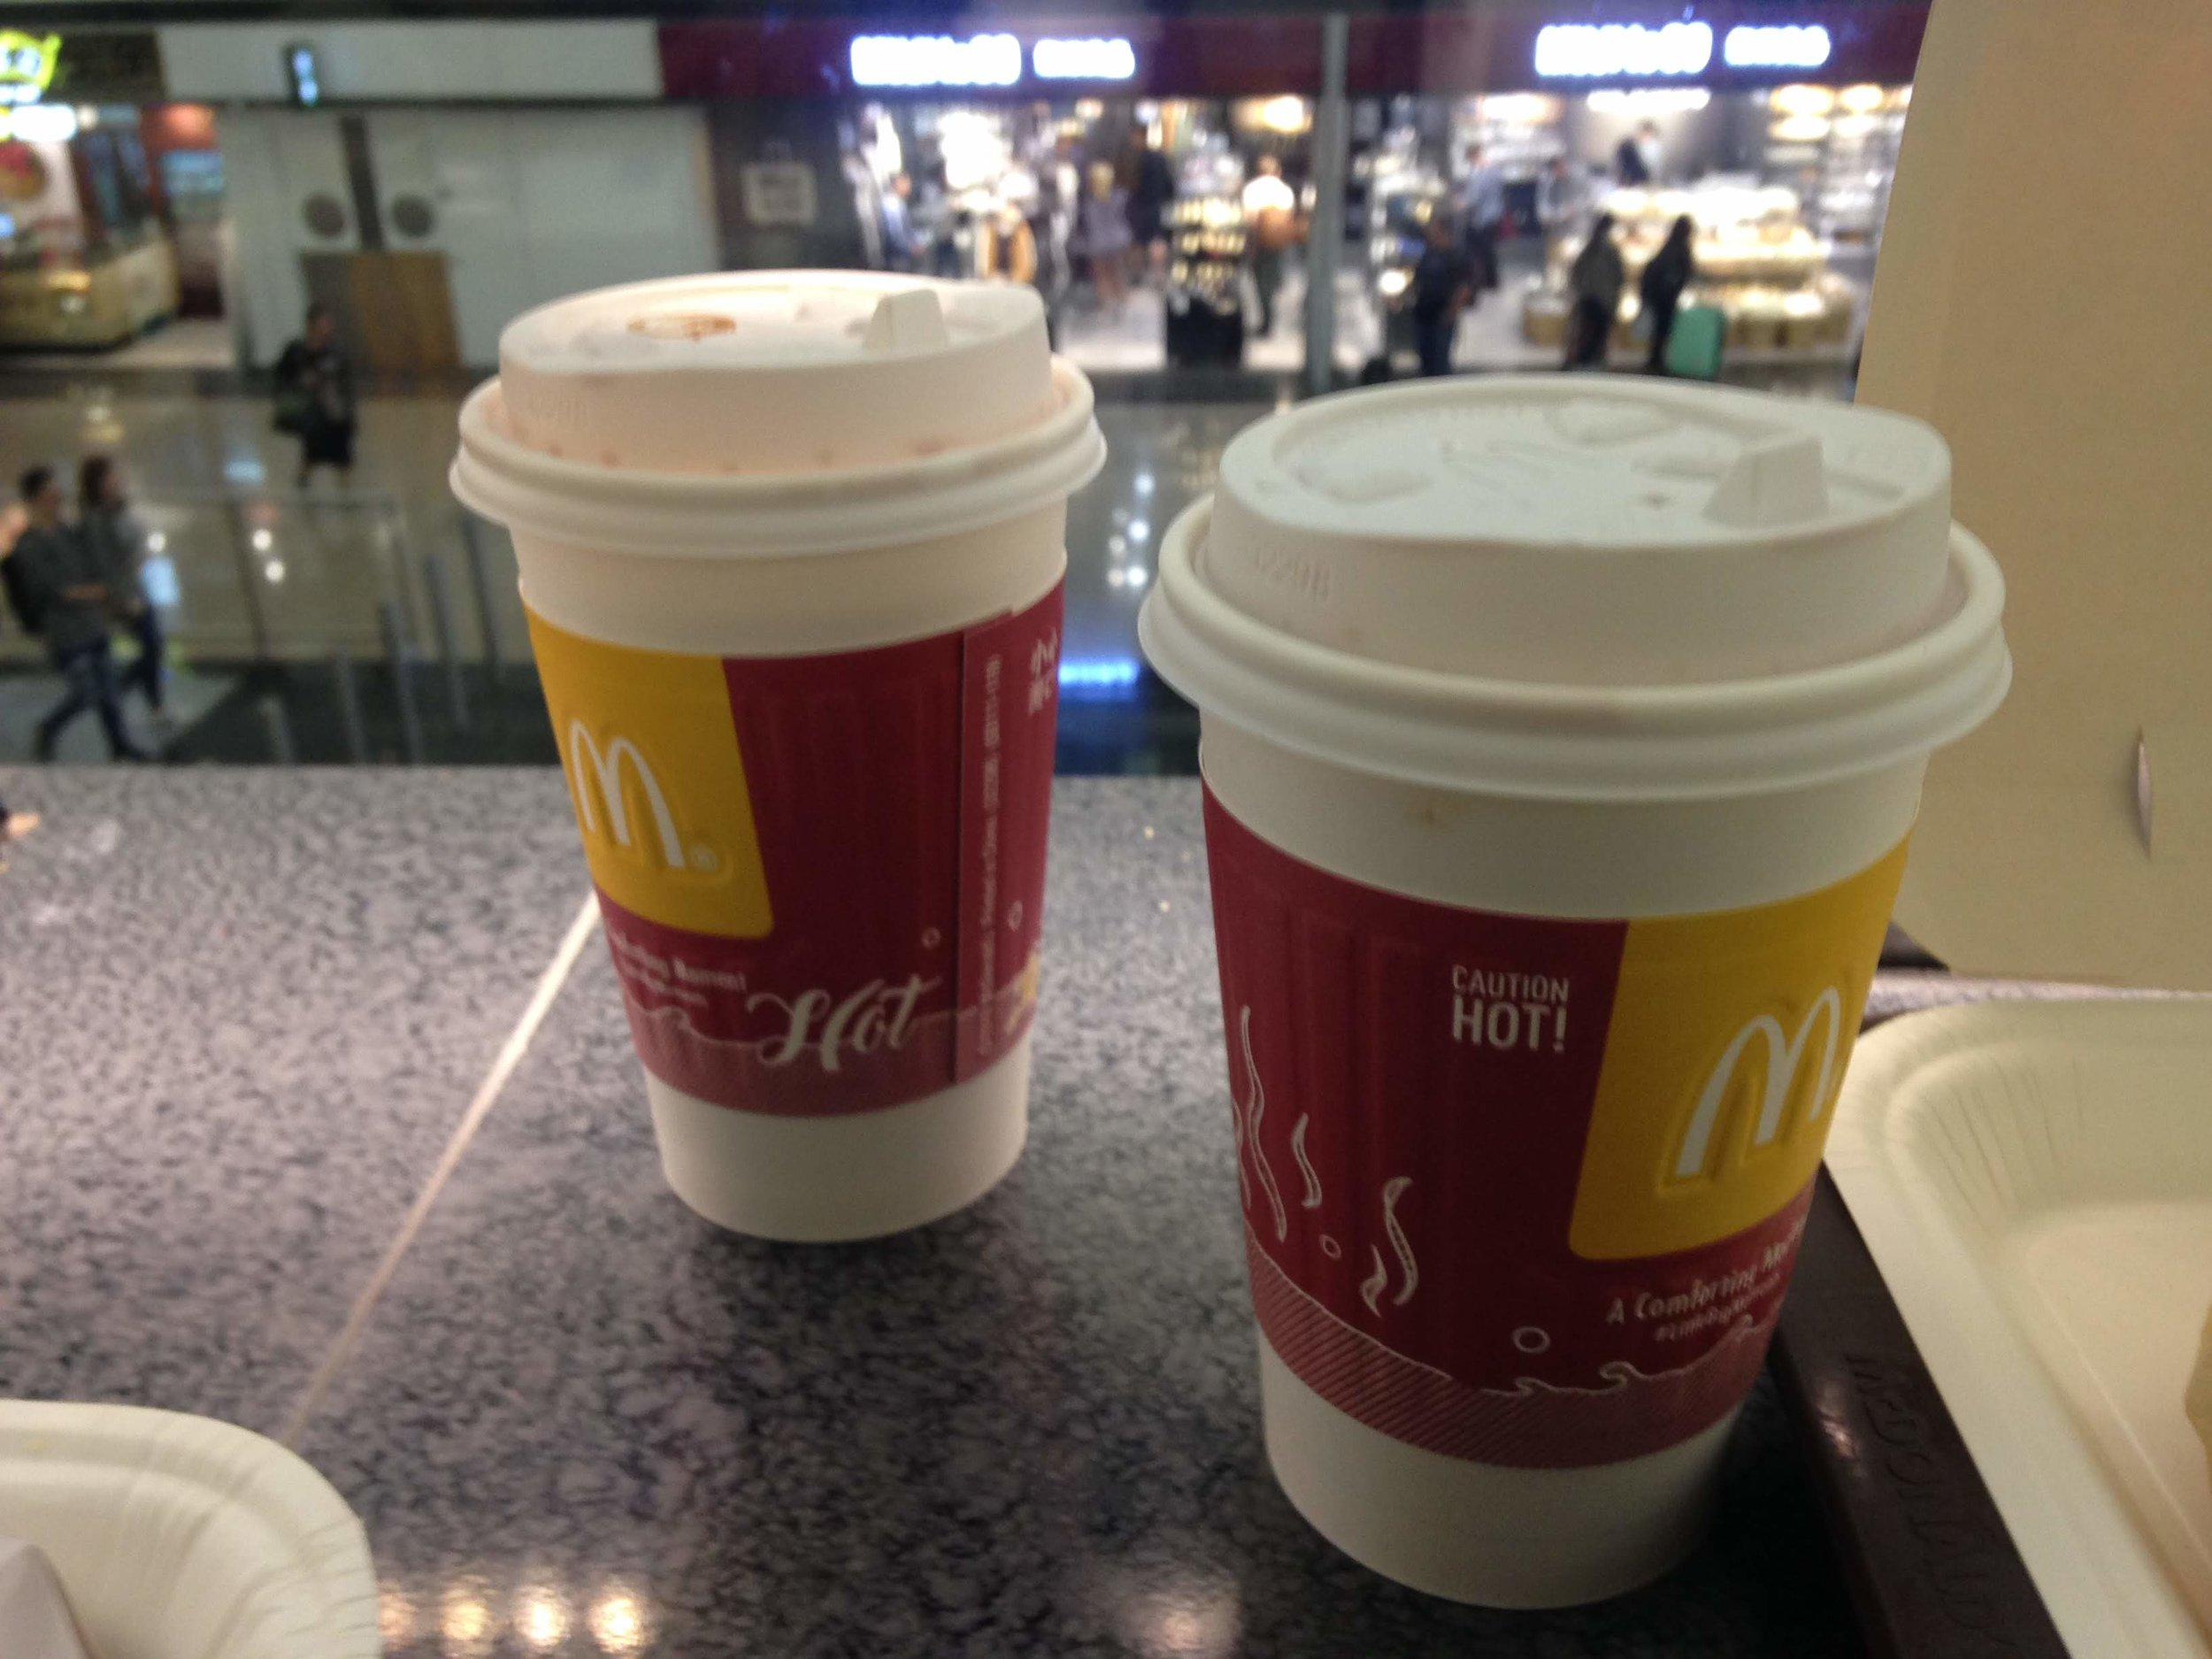 local milk tea from McDonald's Hong Kong at Hong Kong International Airport